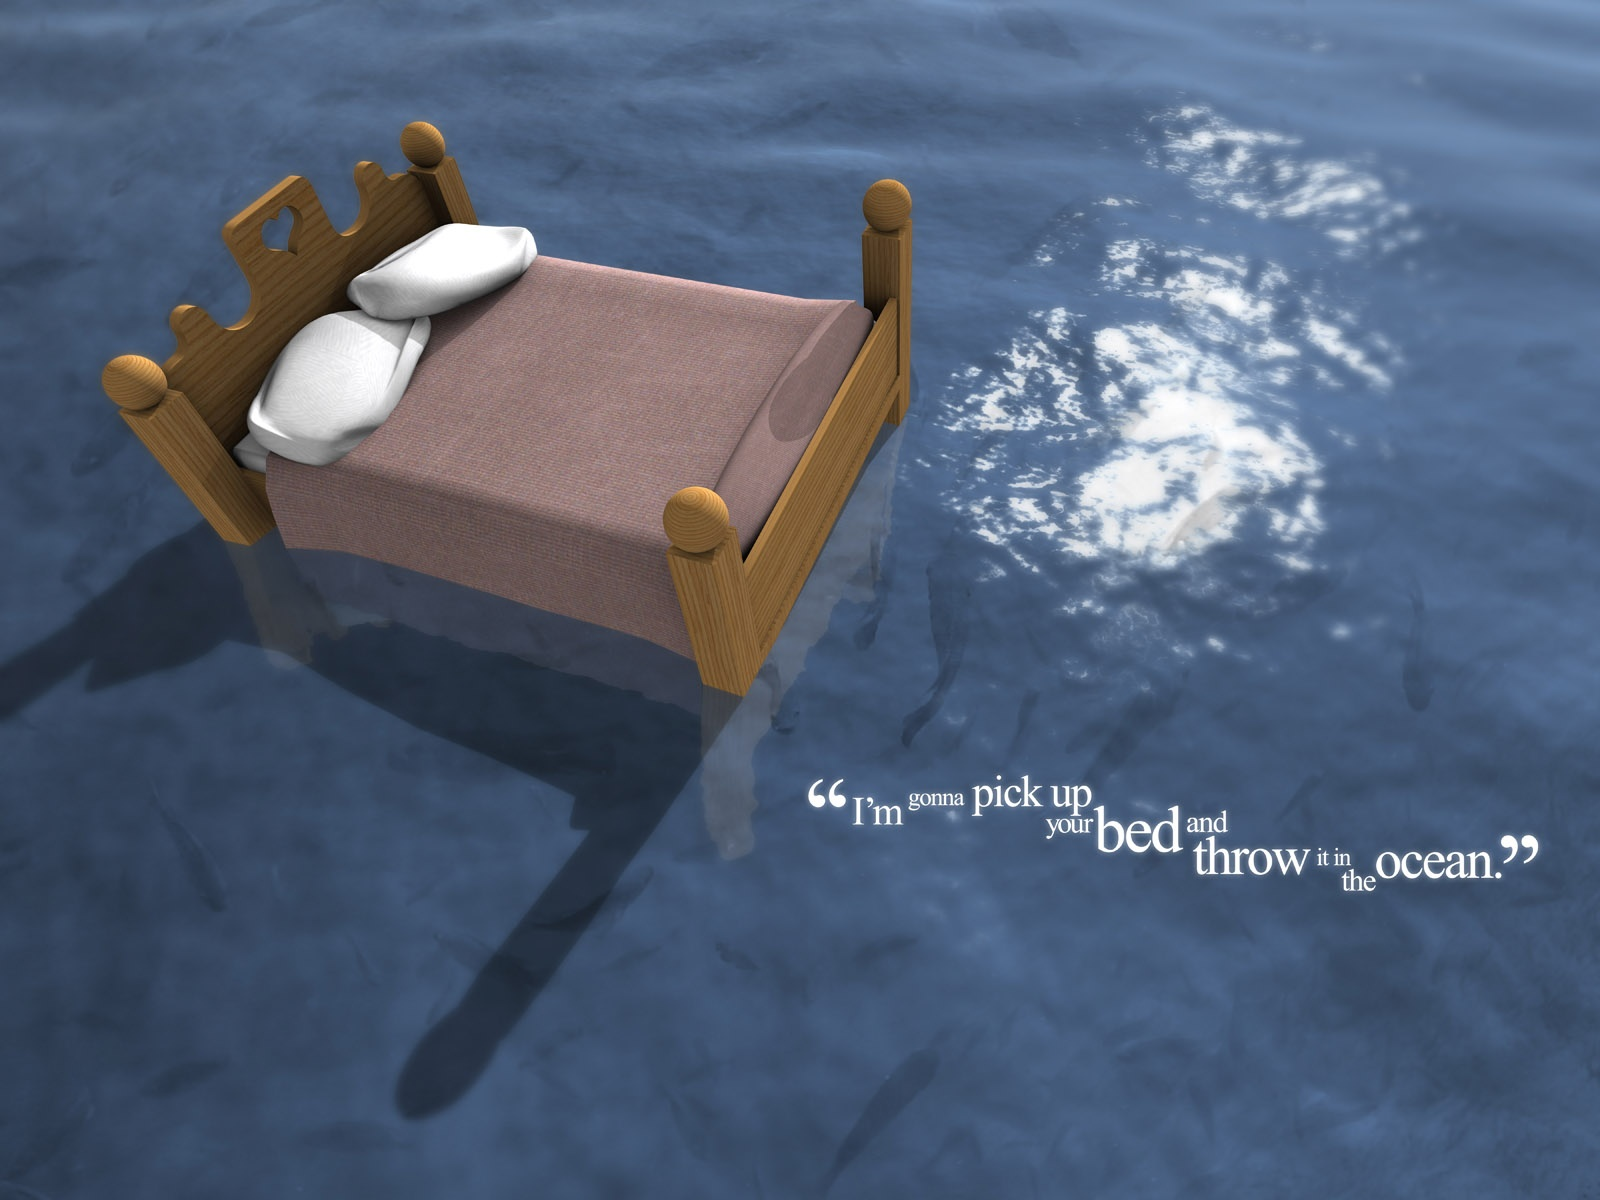 Bed in ocean wallpapers and stock photos. Bed in ocean wallpapers   Bed in ocean stock photos